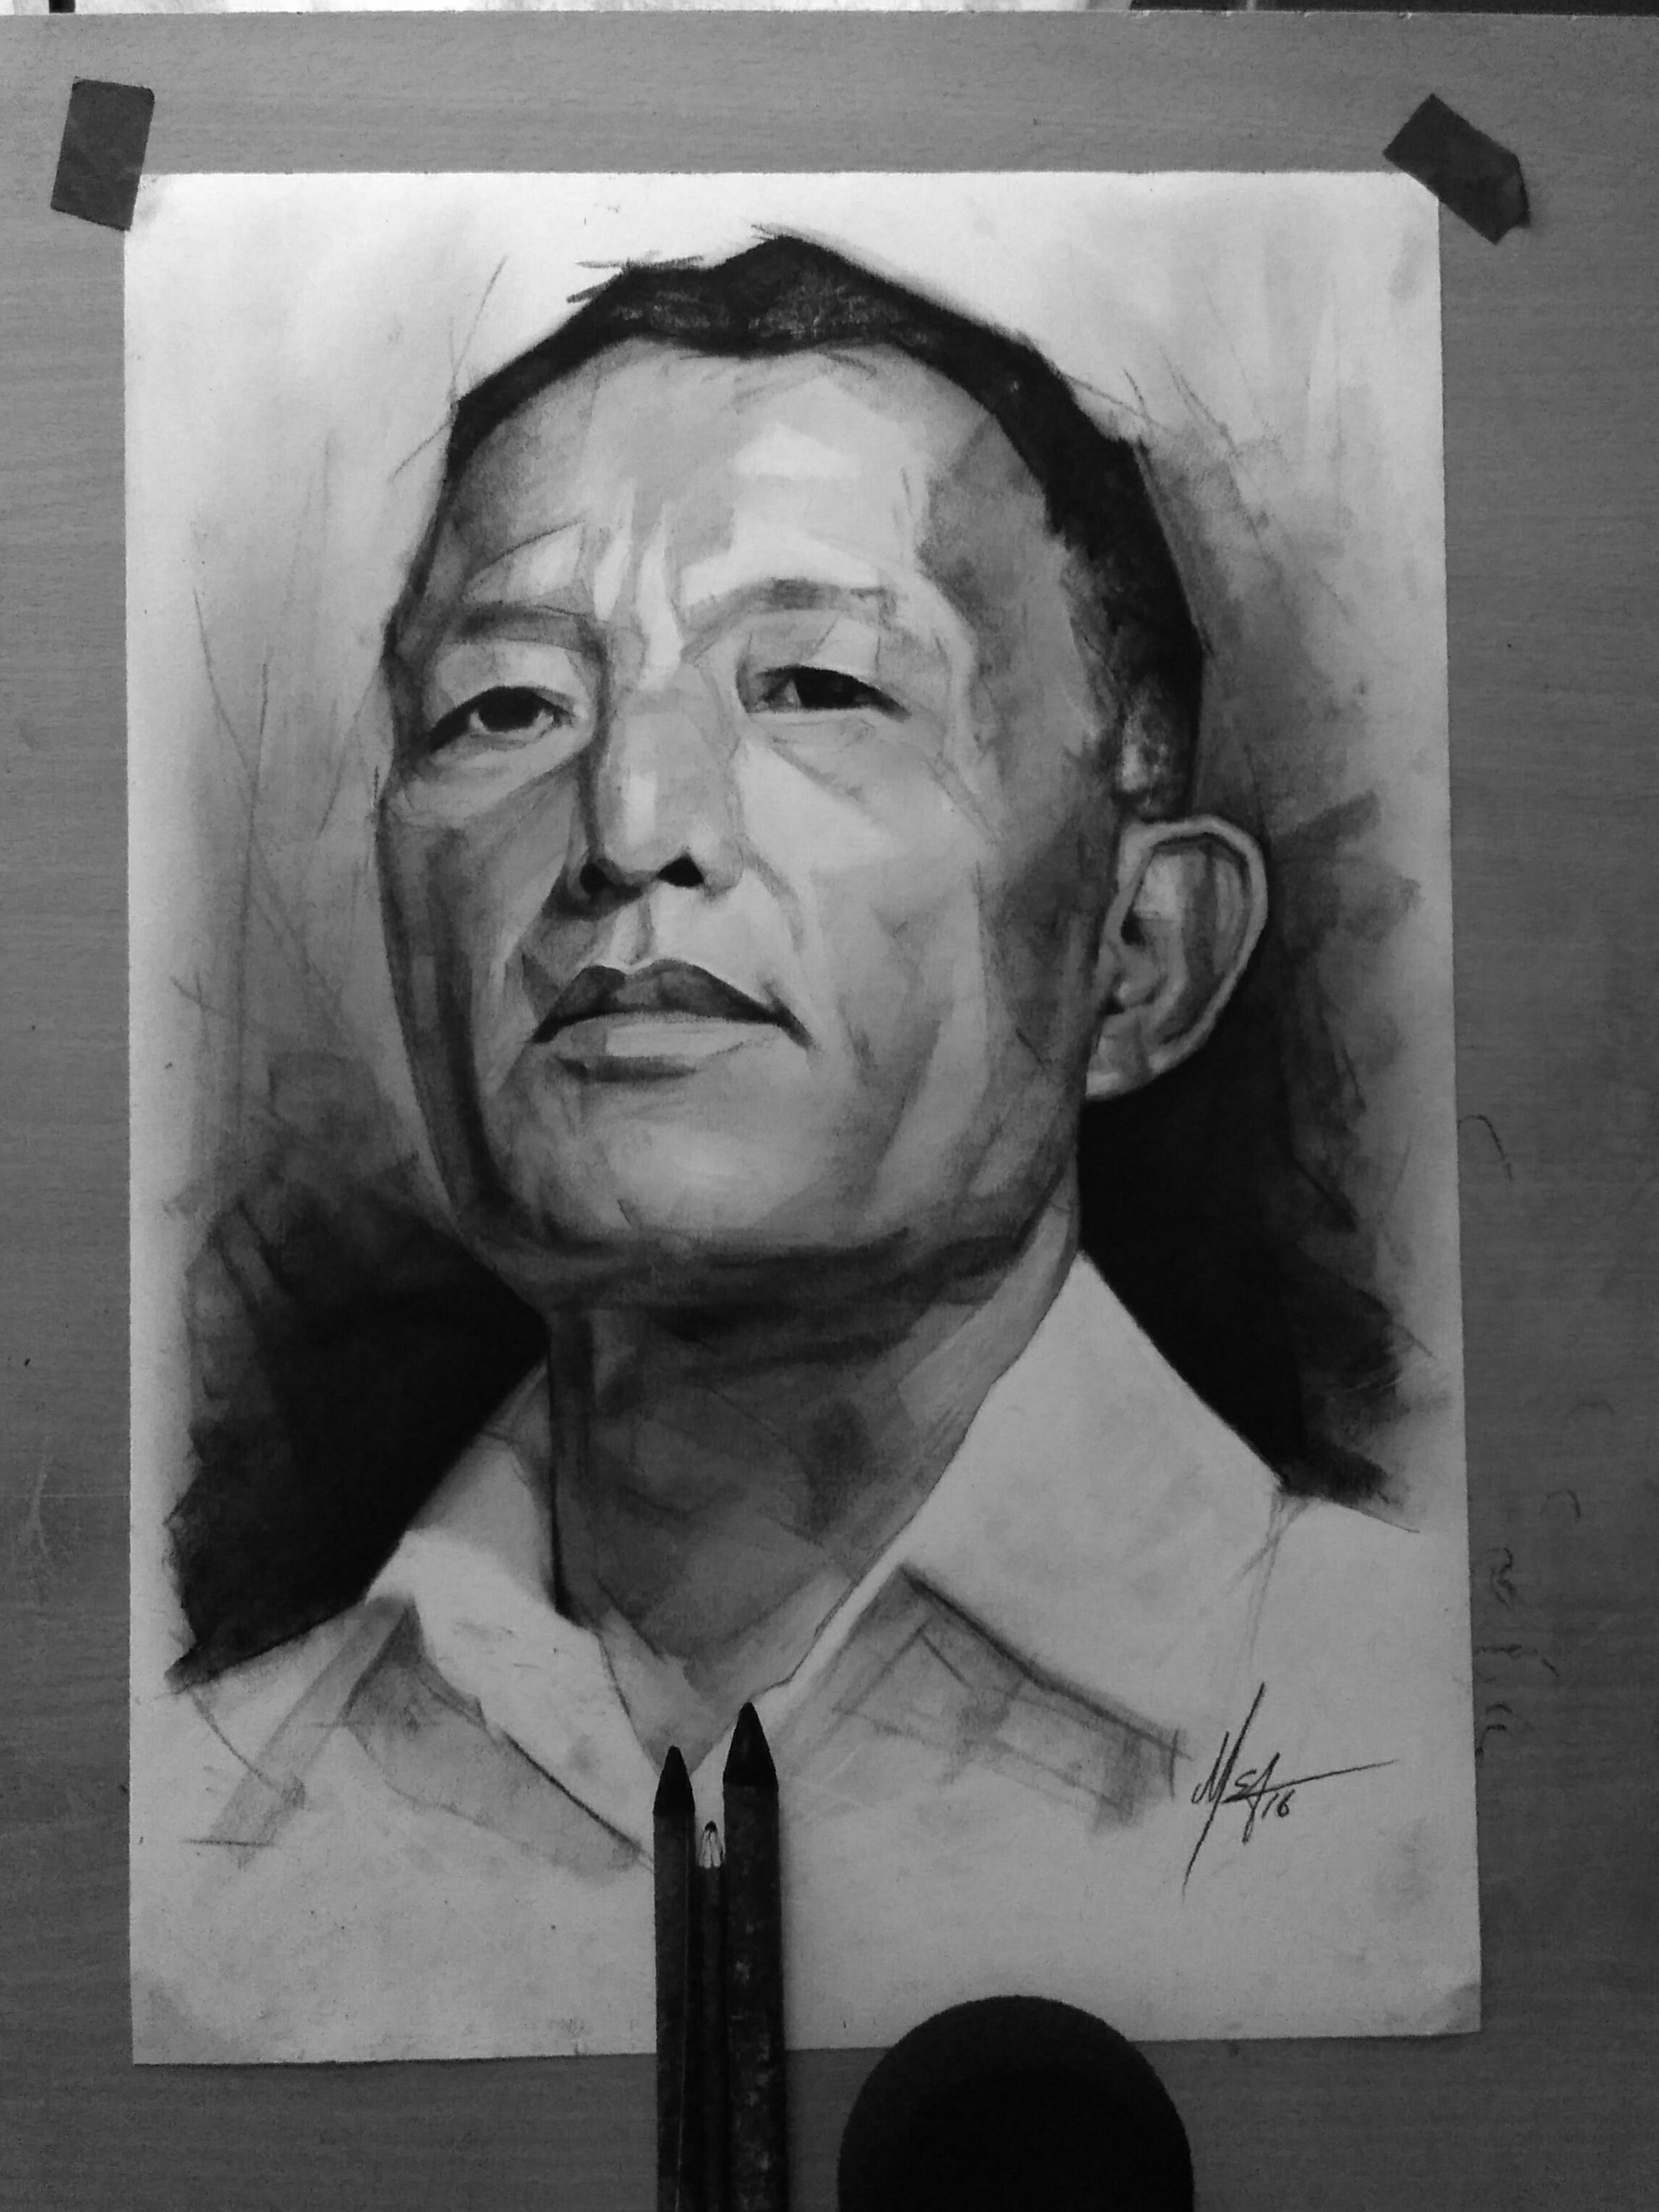 C m s dawngliana youngbully portrait charcoal2